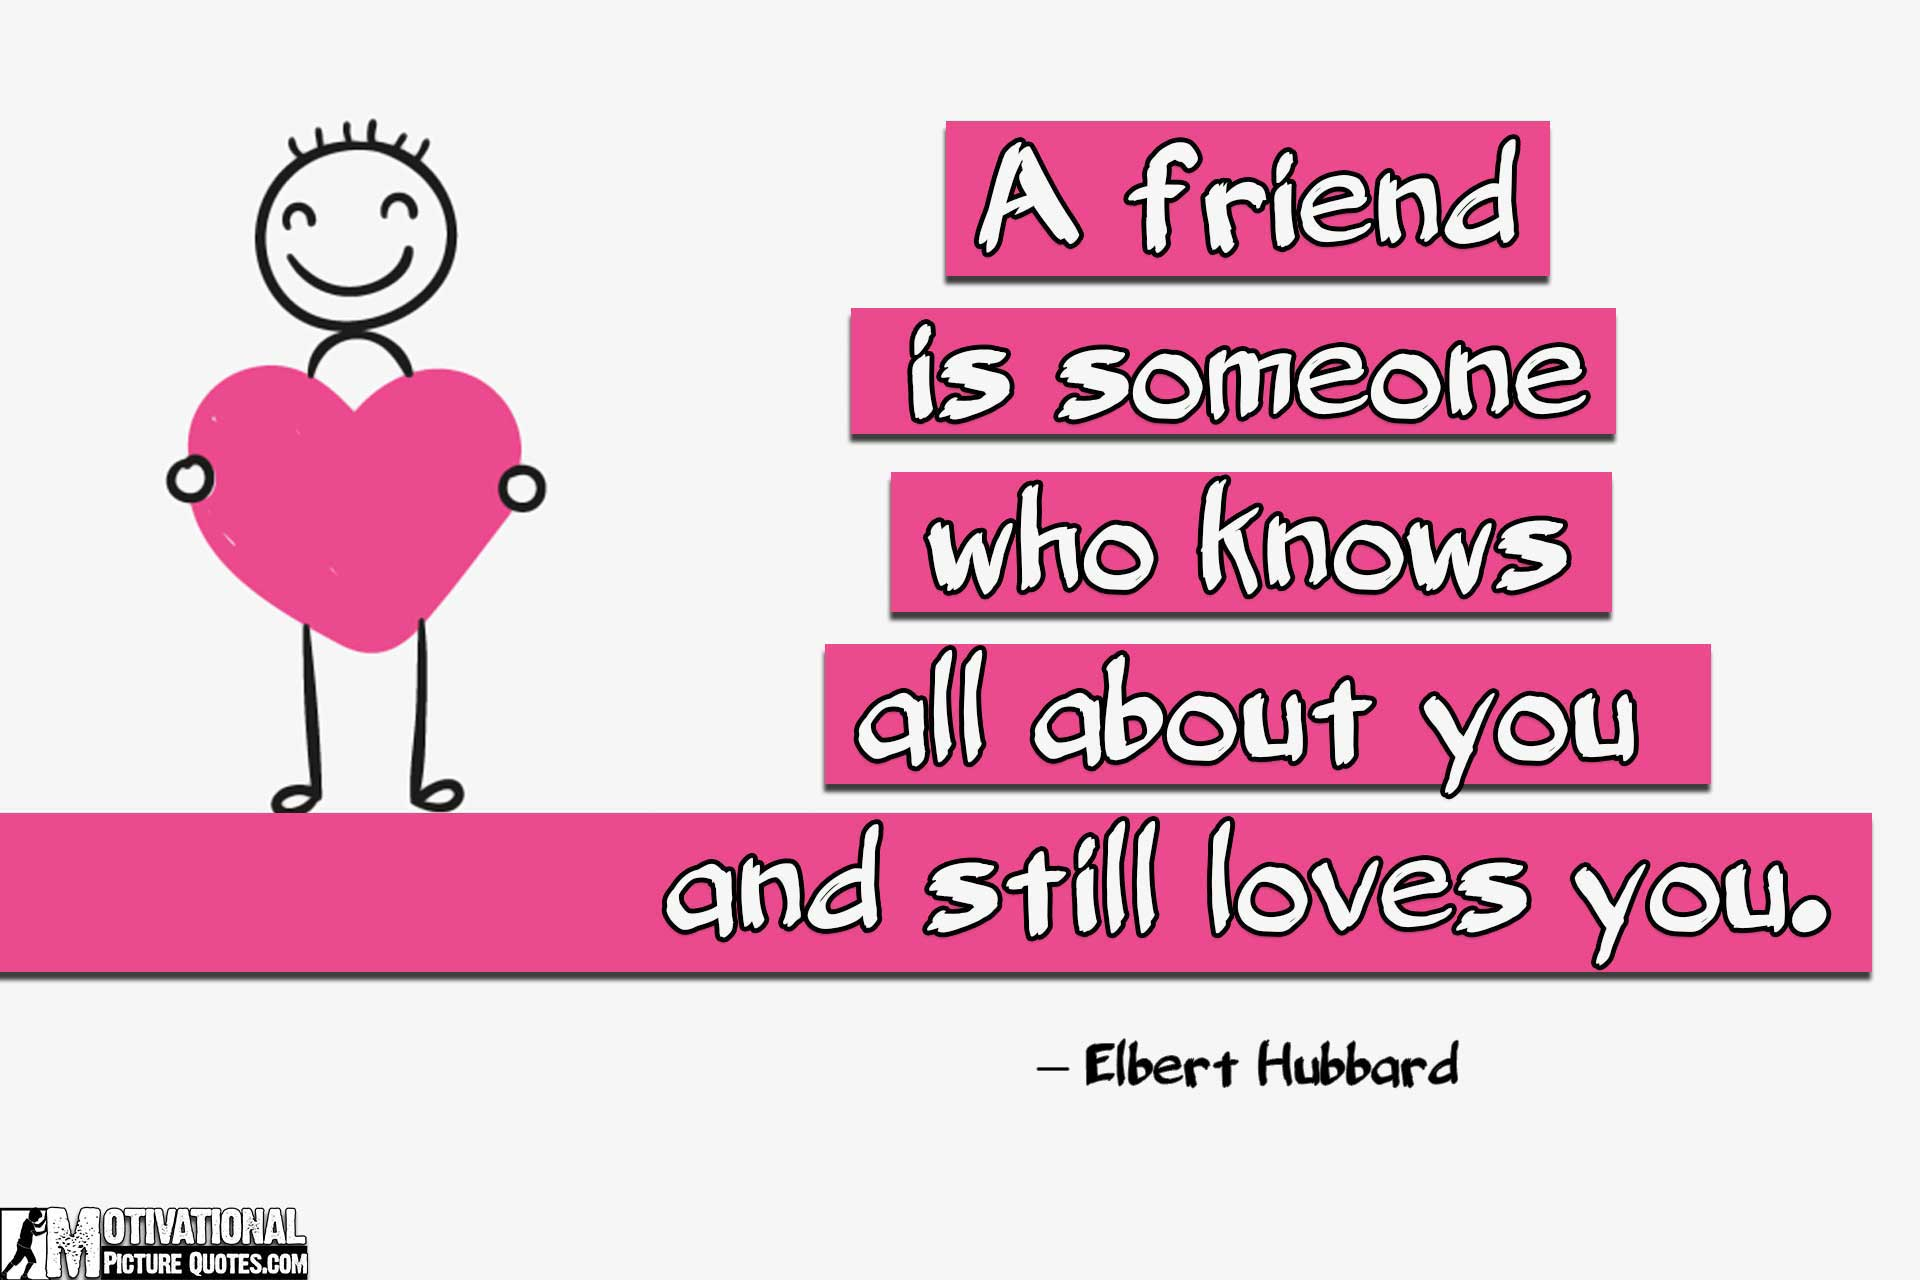 Touching Quotes About Friendship 25 Inspirational Friendship Quotes Images  Free Download